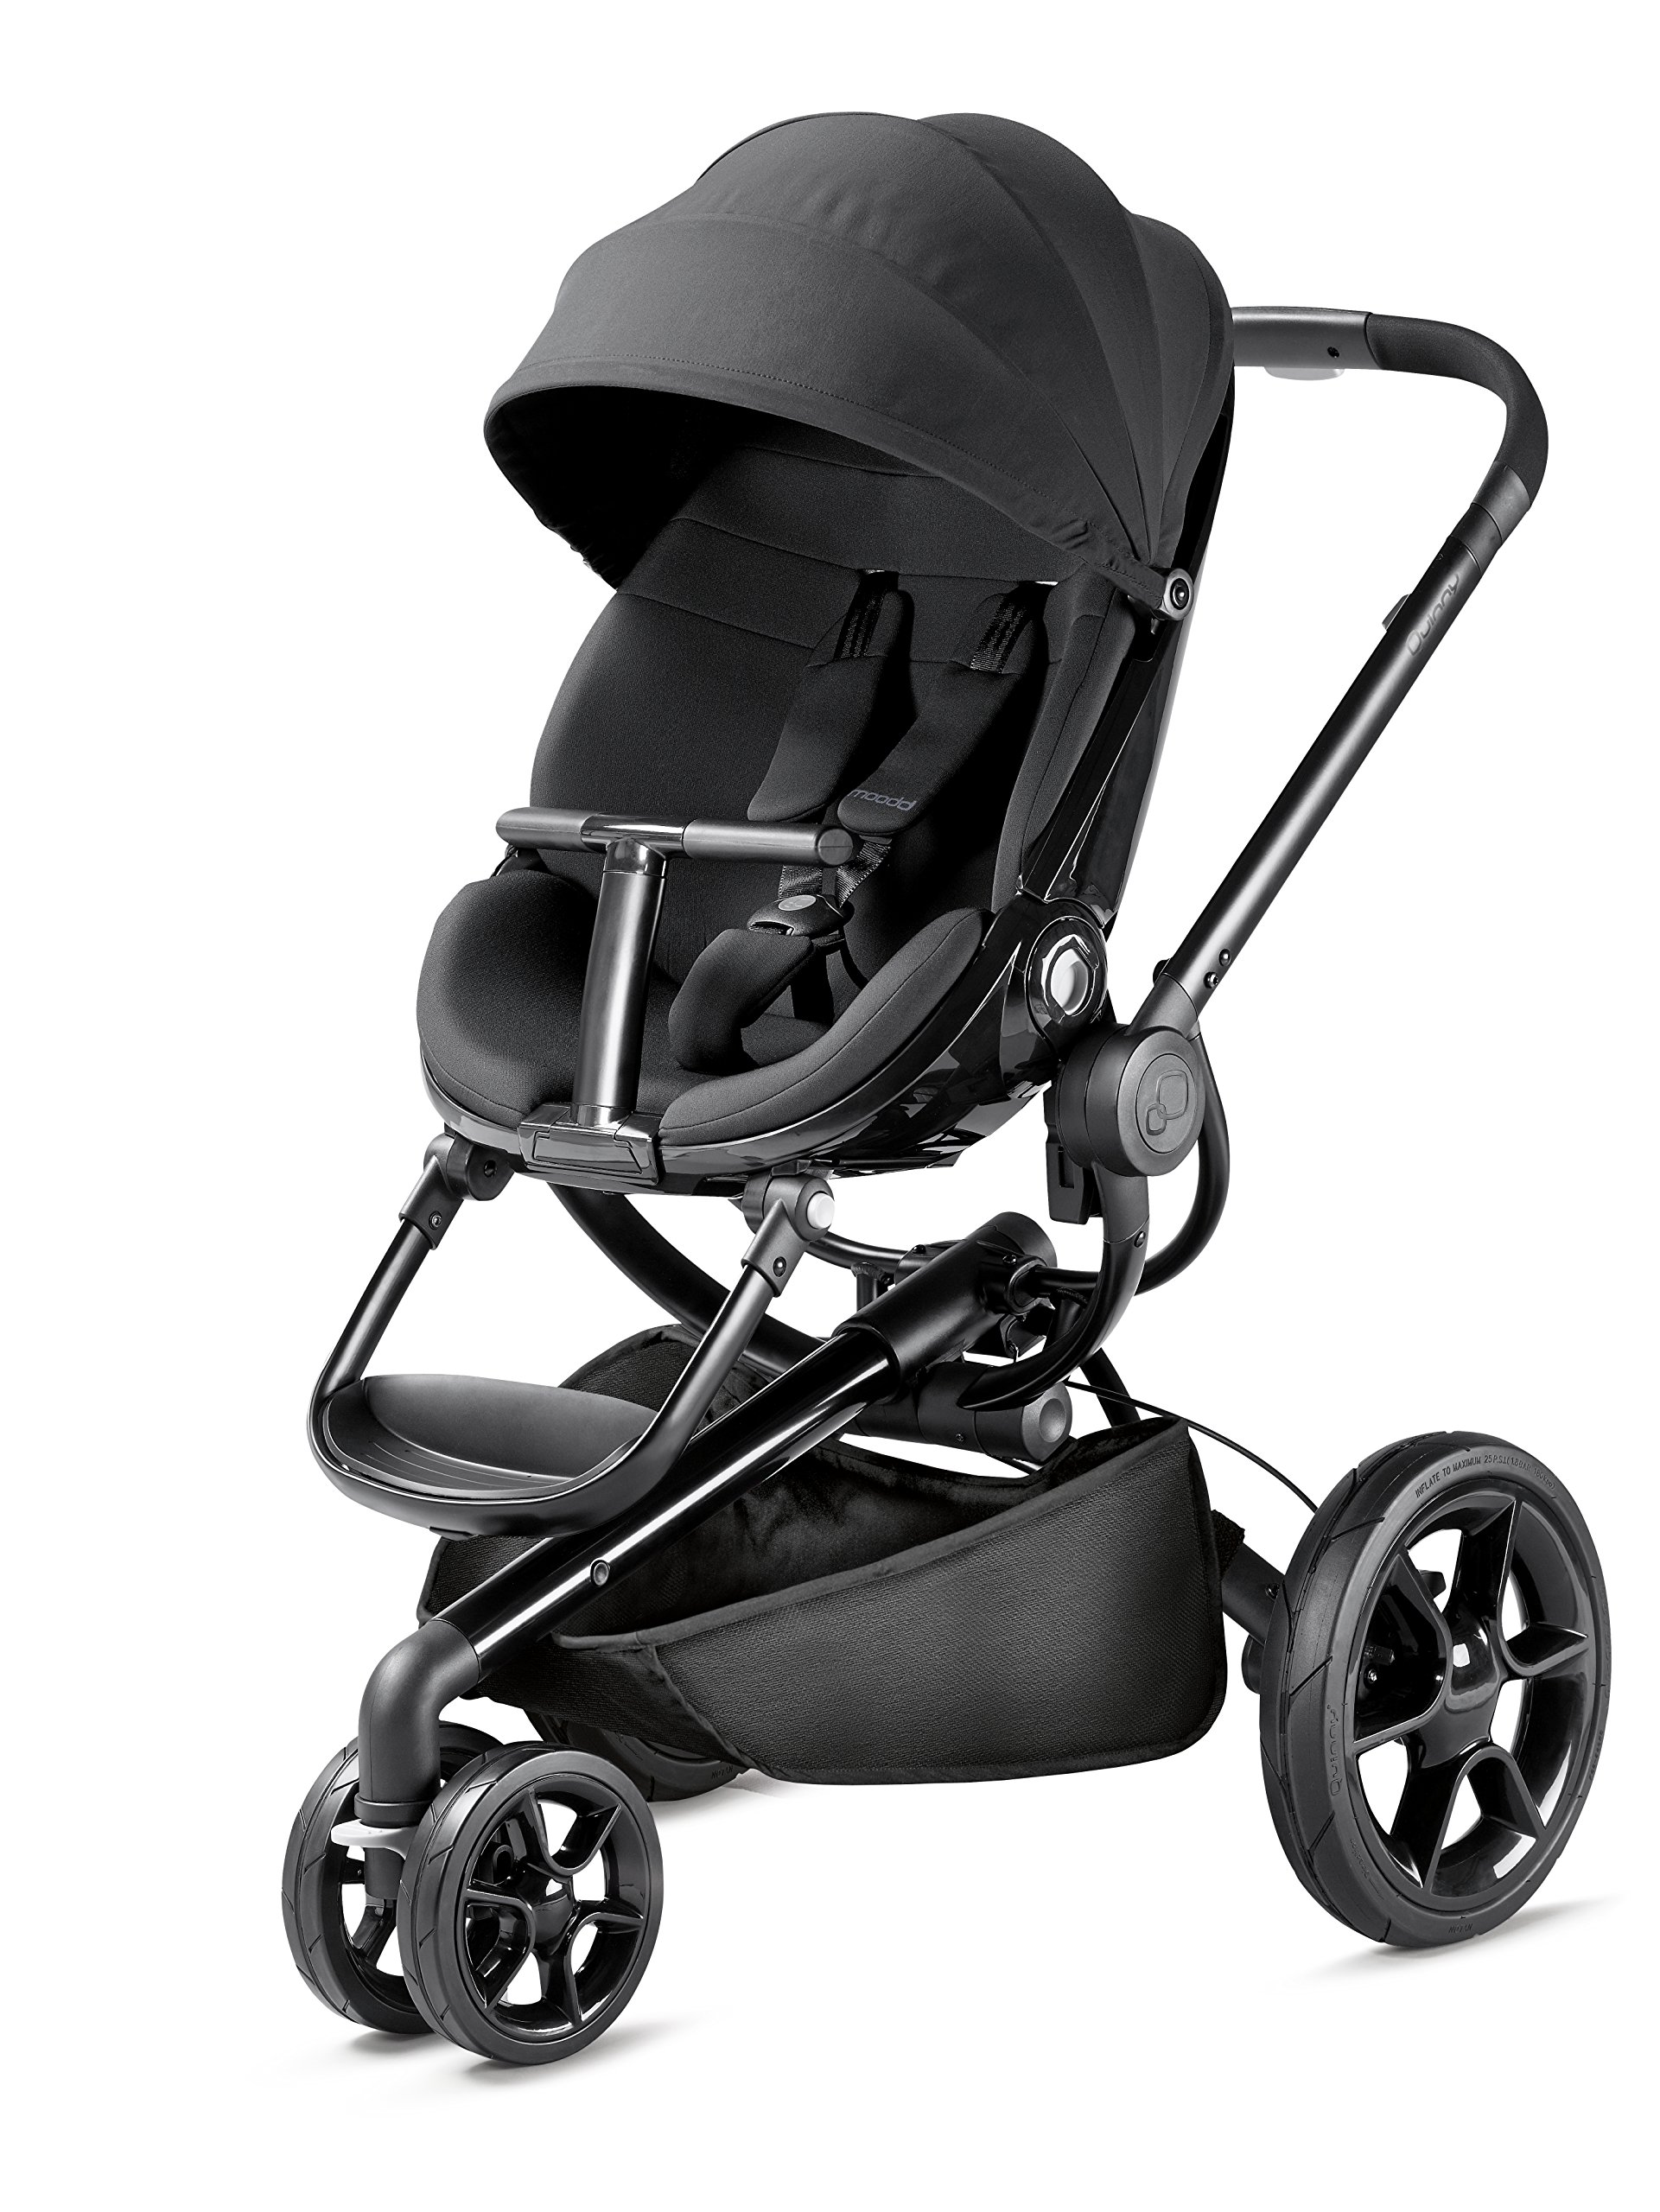 Quinny Moodd Pushchair Frame, Black Devotion Maxi-Cosi Stylish urban pushchair with cozy baby nest - suitable from birth to 15 kg (approx. 3.5 years) Foam filled comfort tyres and lockable front swivel wheels for a smooth ride Reversible seat unit with 3 recline position (including lie-flat options for newborns) 1